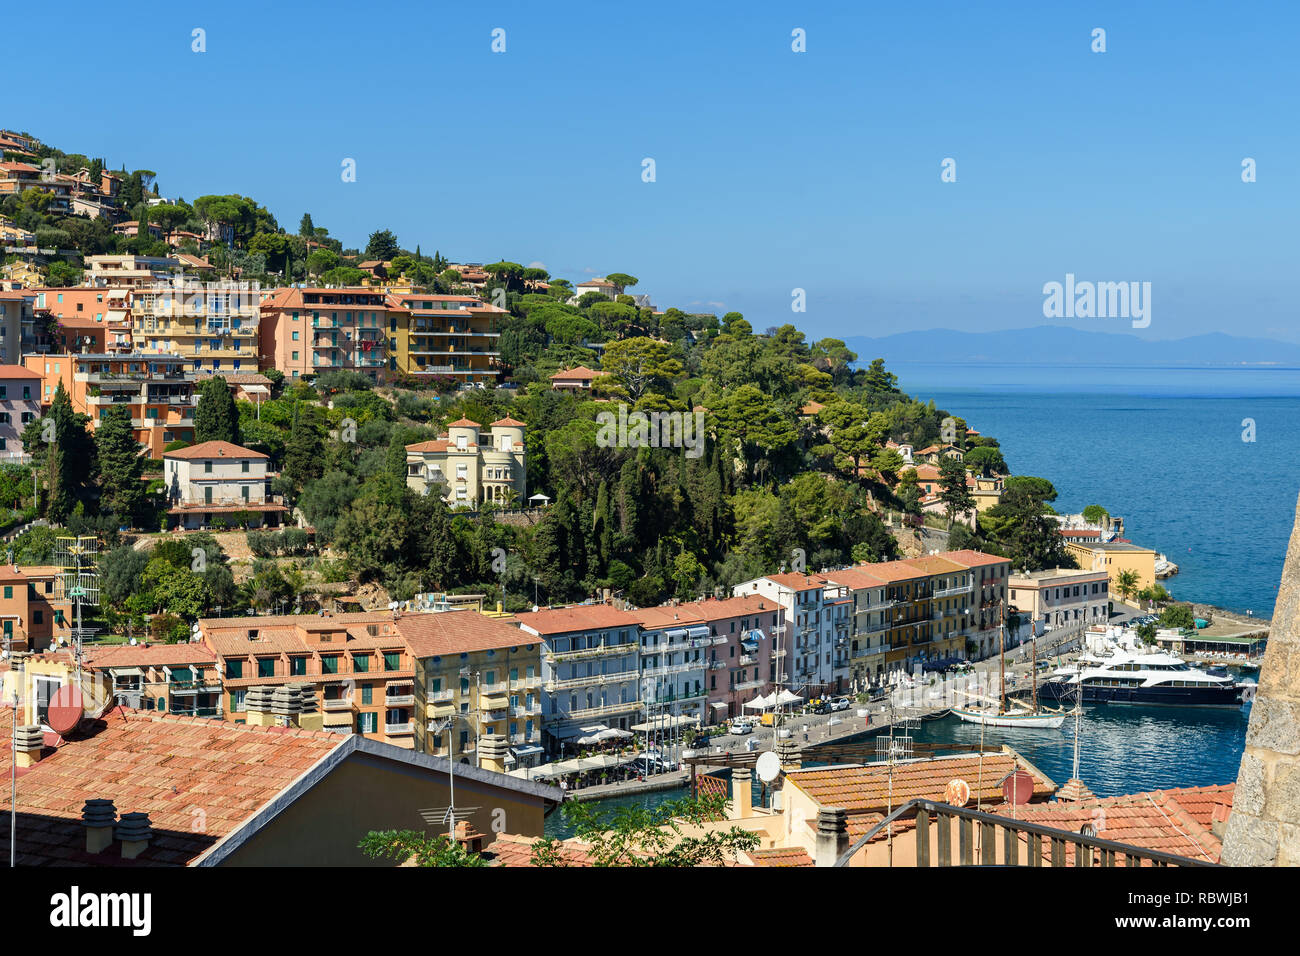 View of harbor seafront in seaport town Porto Santo Stefano in Monte Argentario. Tuscany. Italy - Stock Image